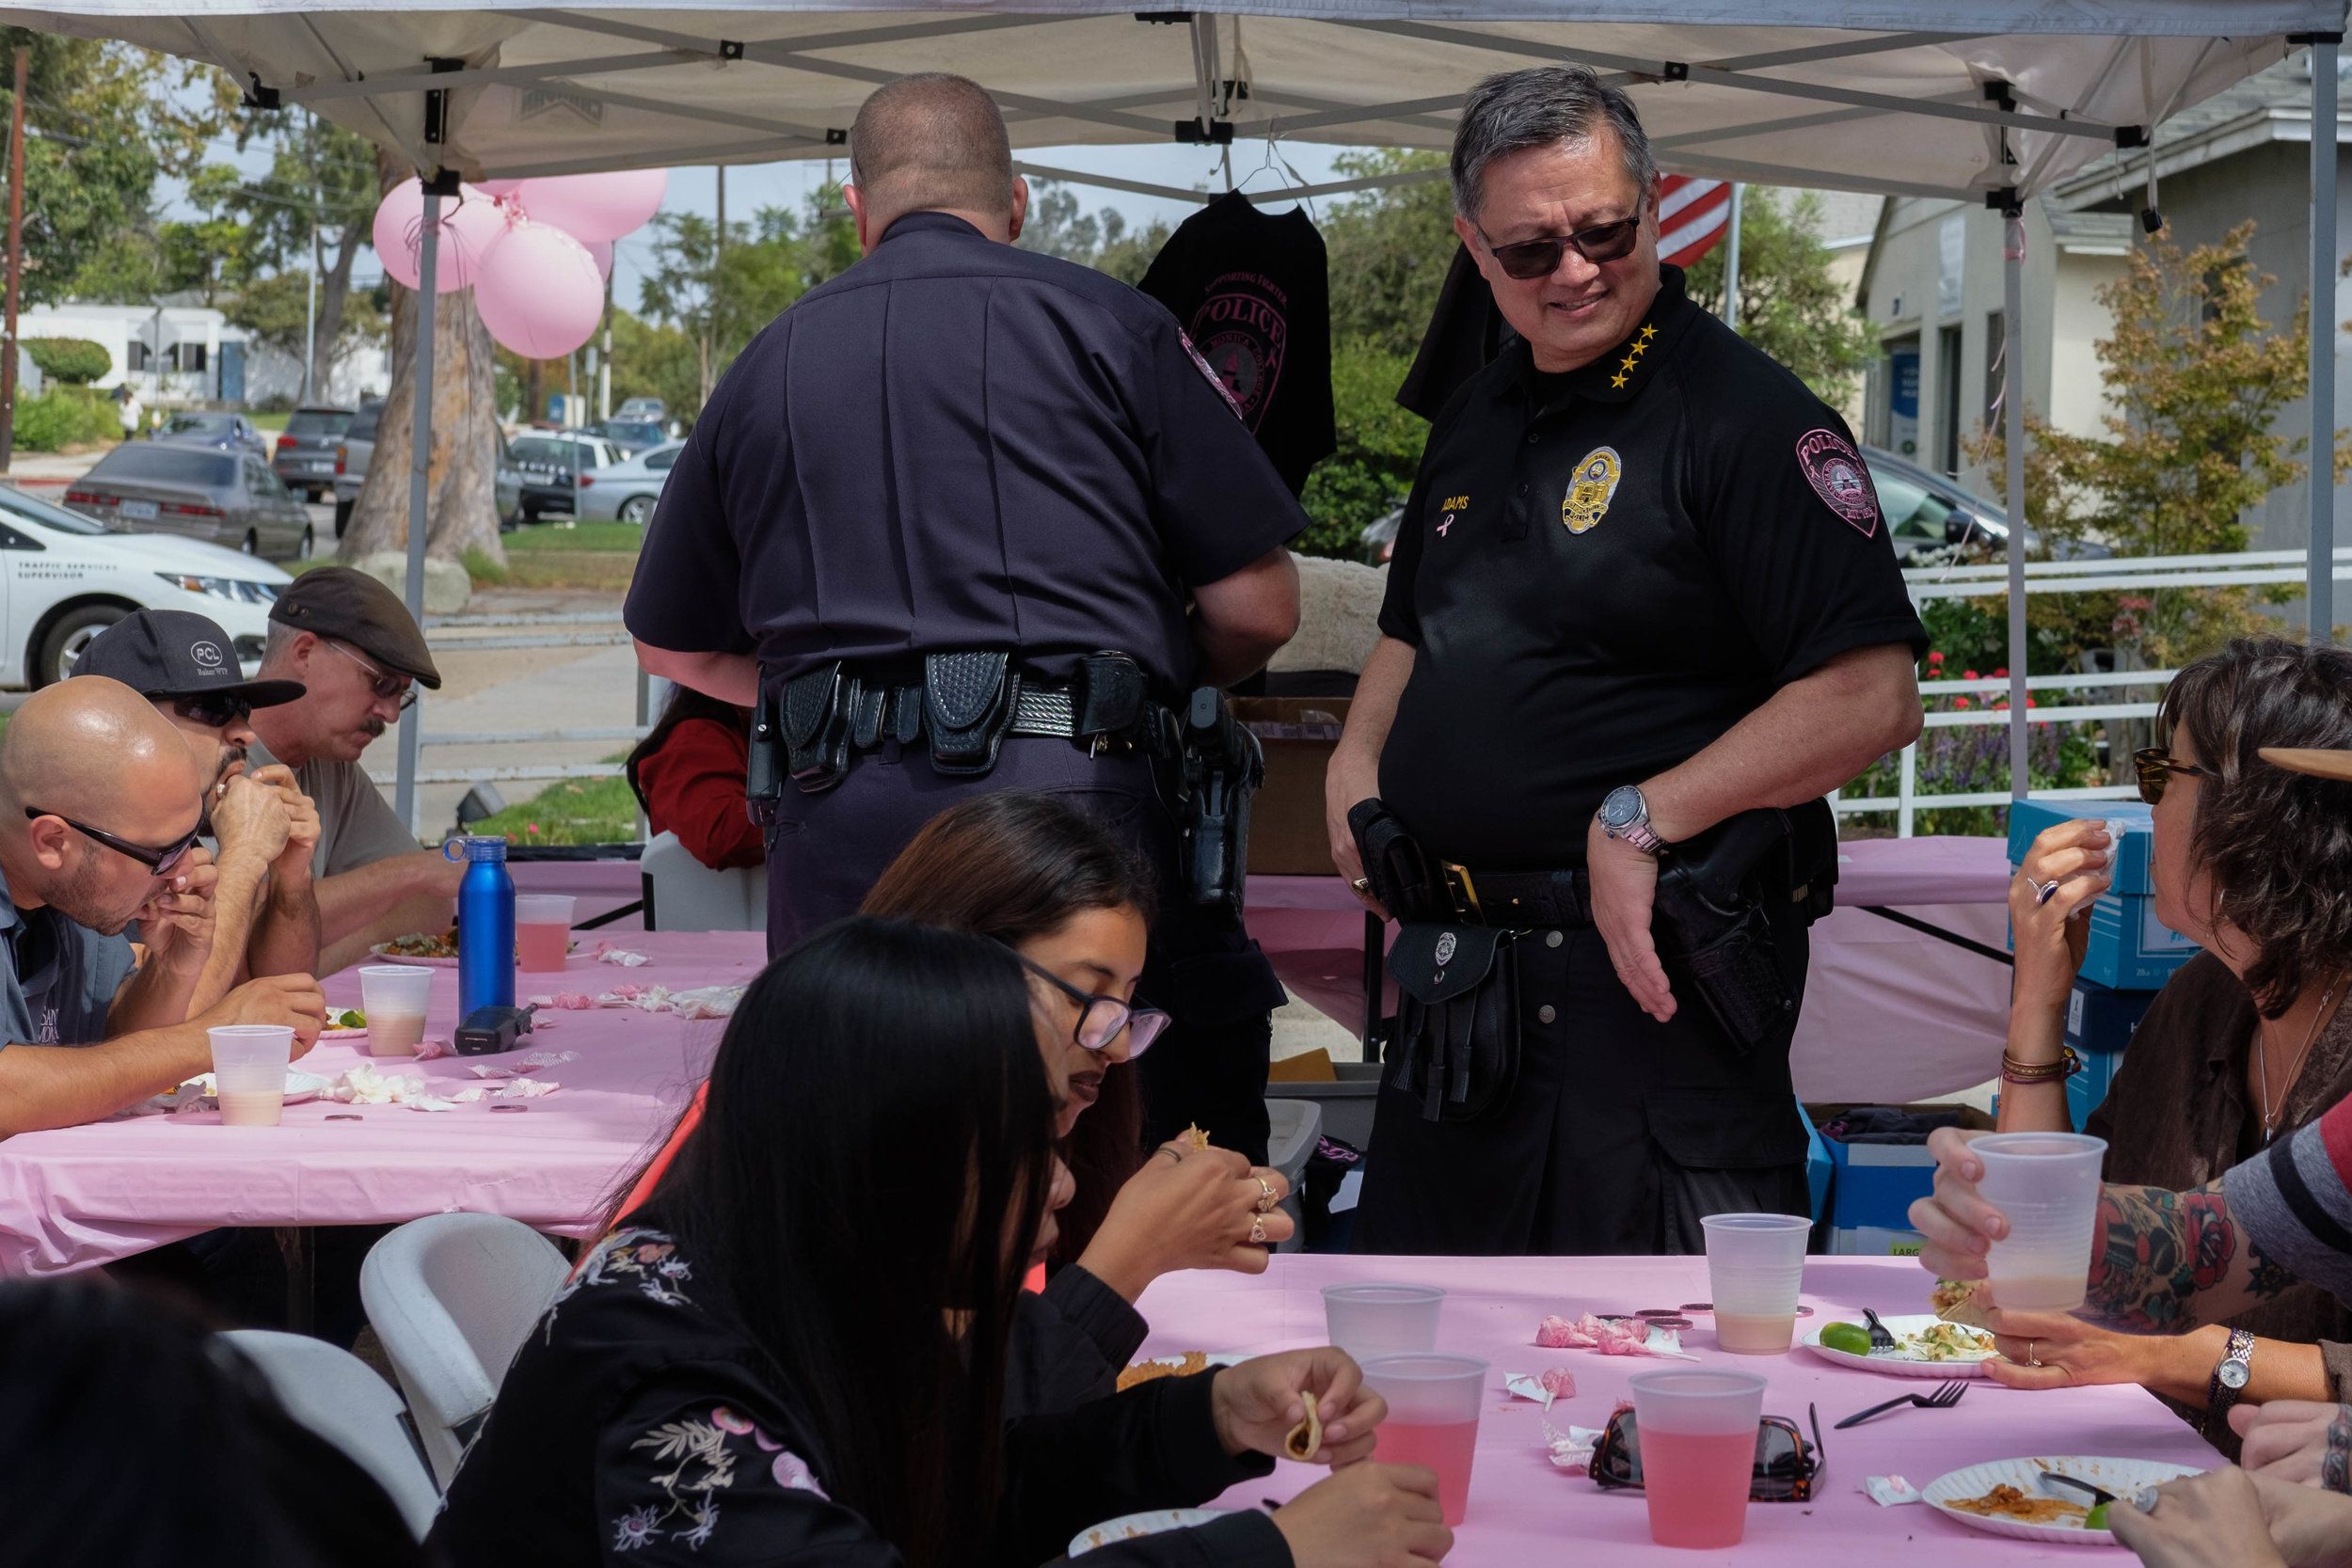 Chief of Police, Johnnie Adams chats with event attendees in Santa Monica, Calif. on October 3rd, 2017. Photo by: Jayrol San Jose